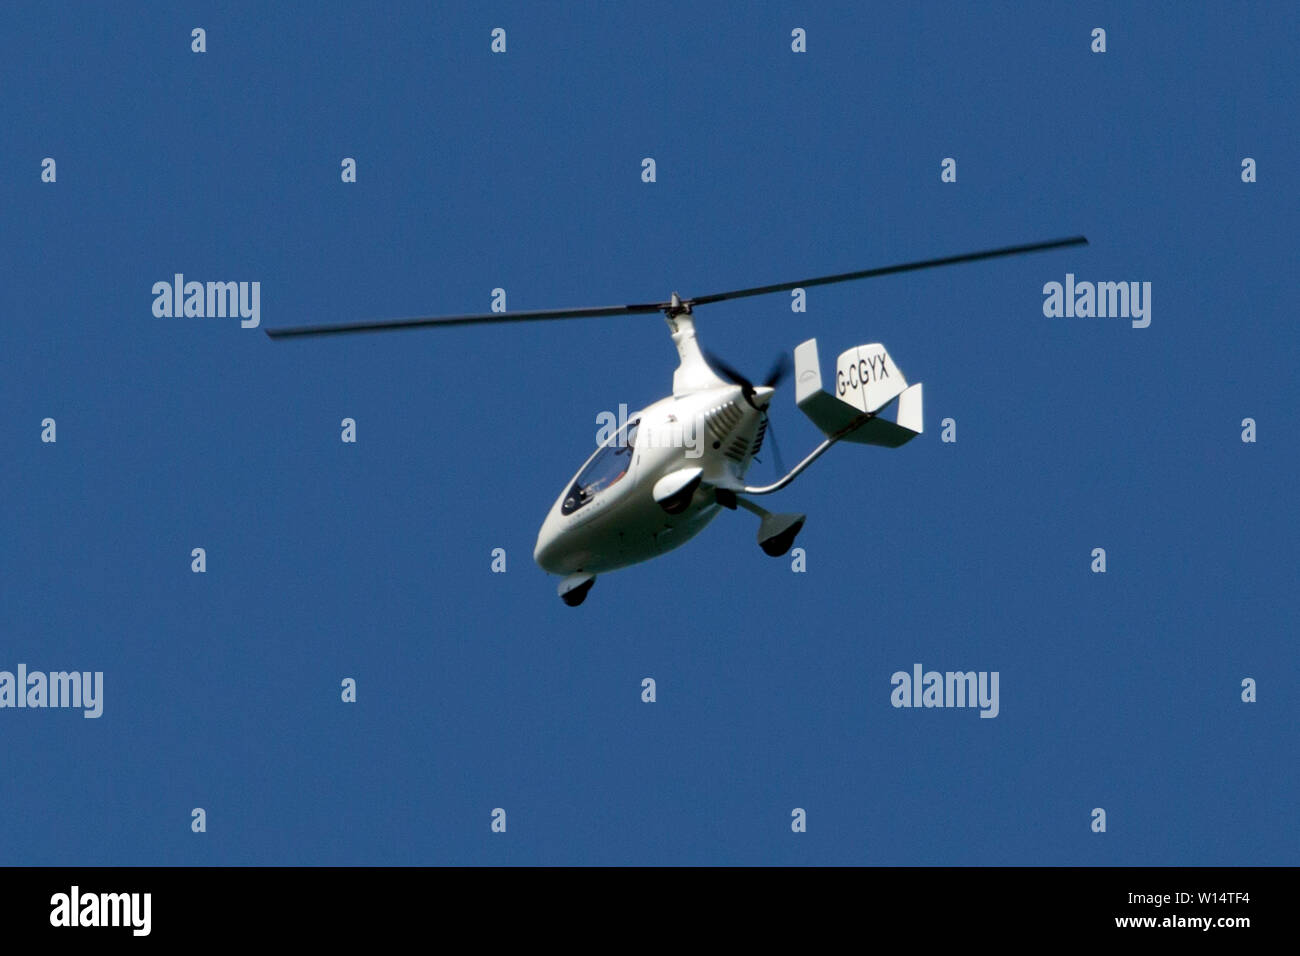 Autogyro Stock Photos & Autogyro Stock Images - Alamy